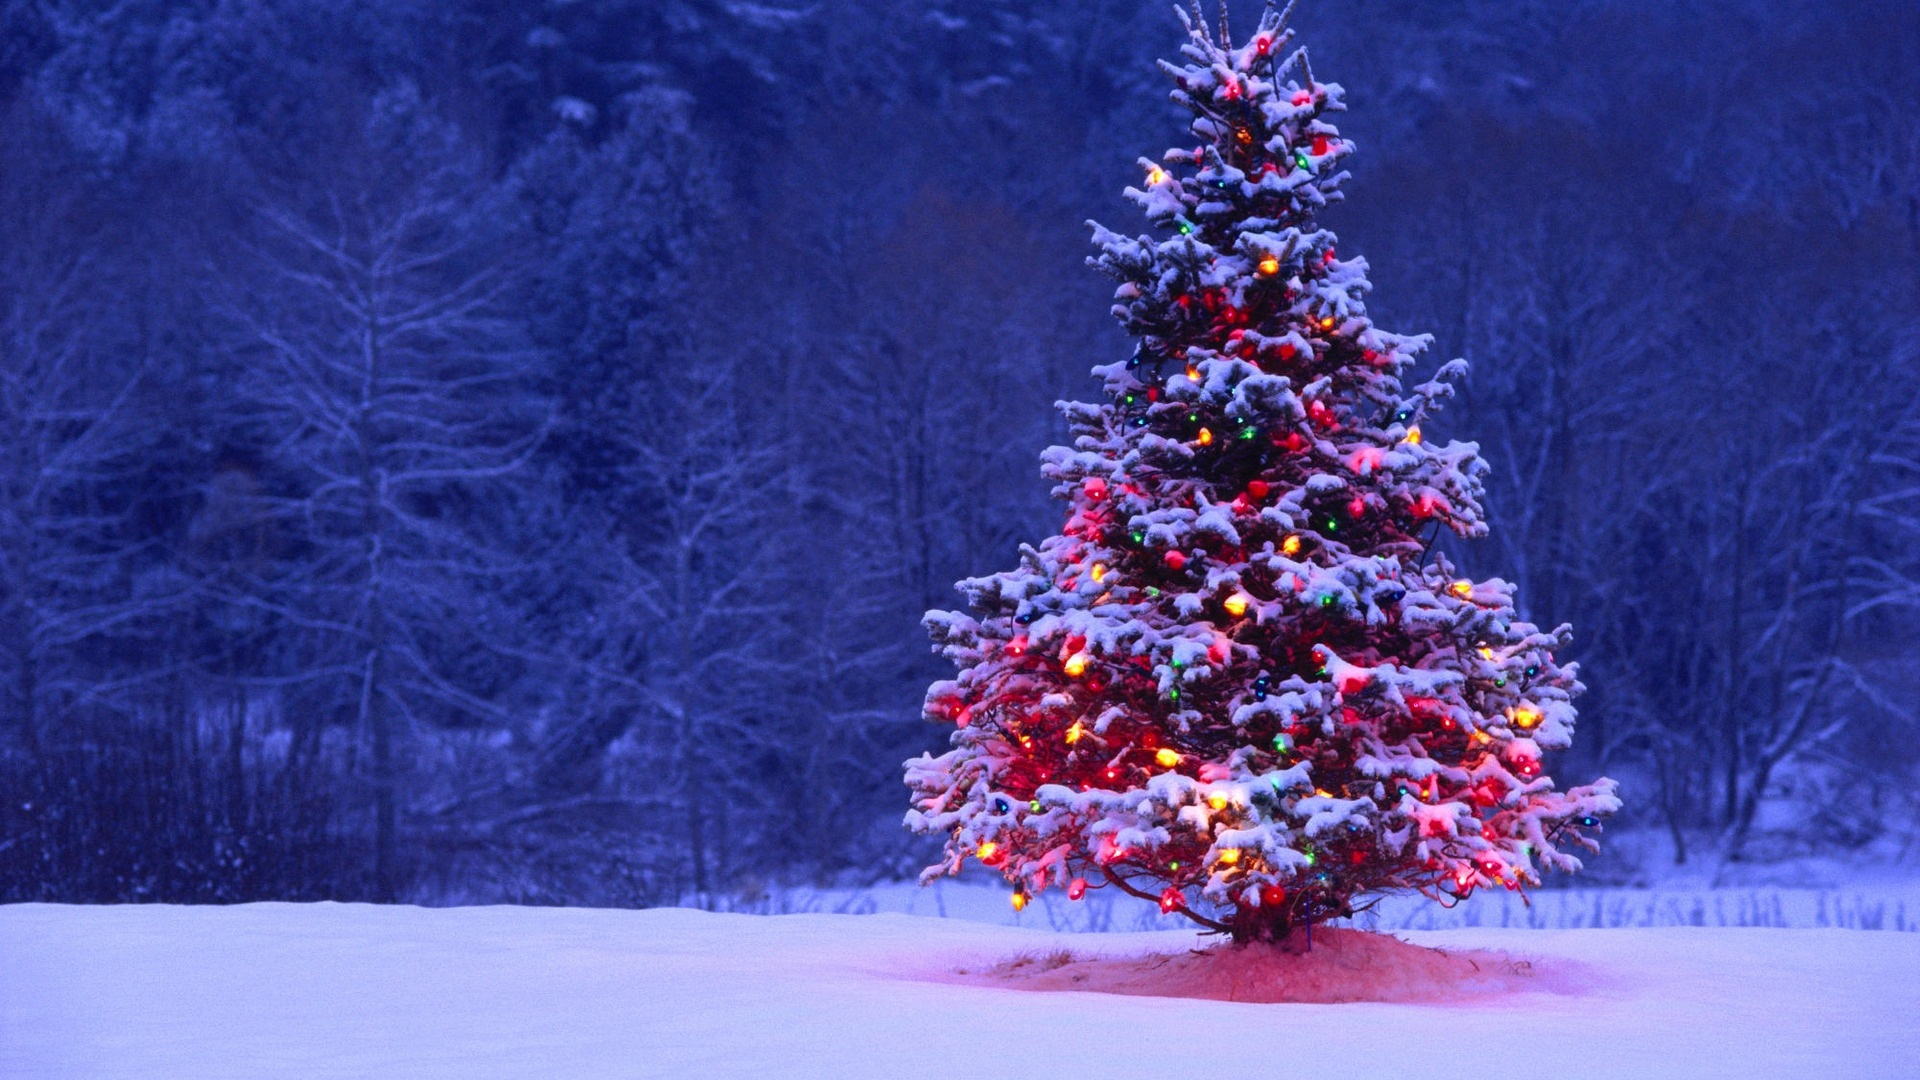 Images Of Christmas Tree with Snow and Lights 571.82 Kb